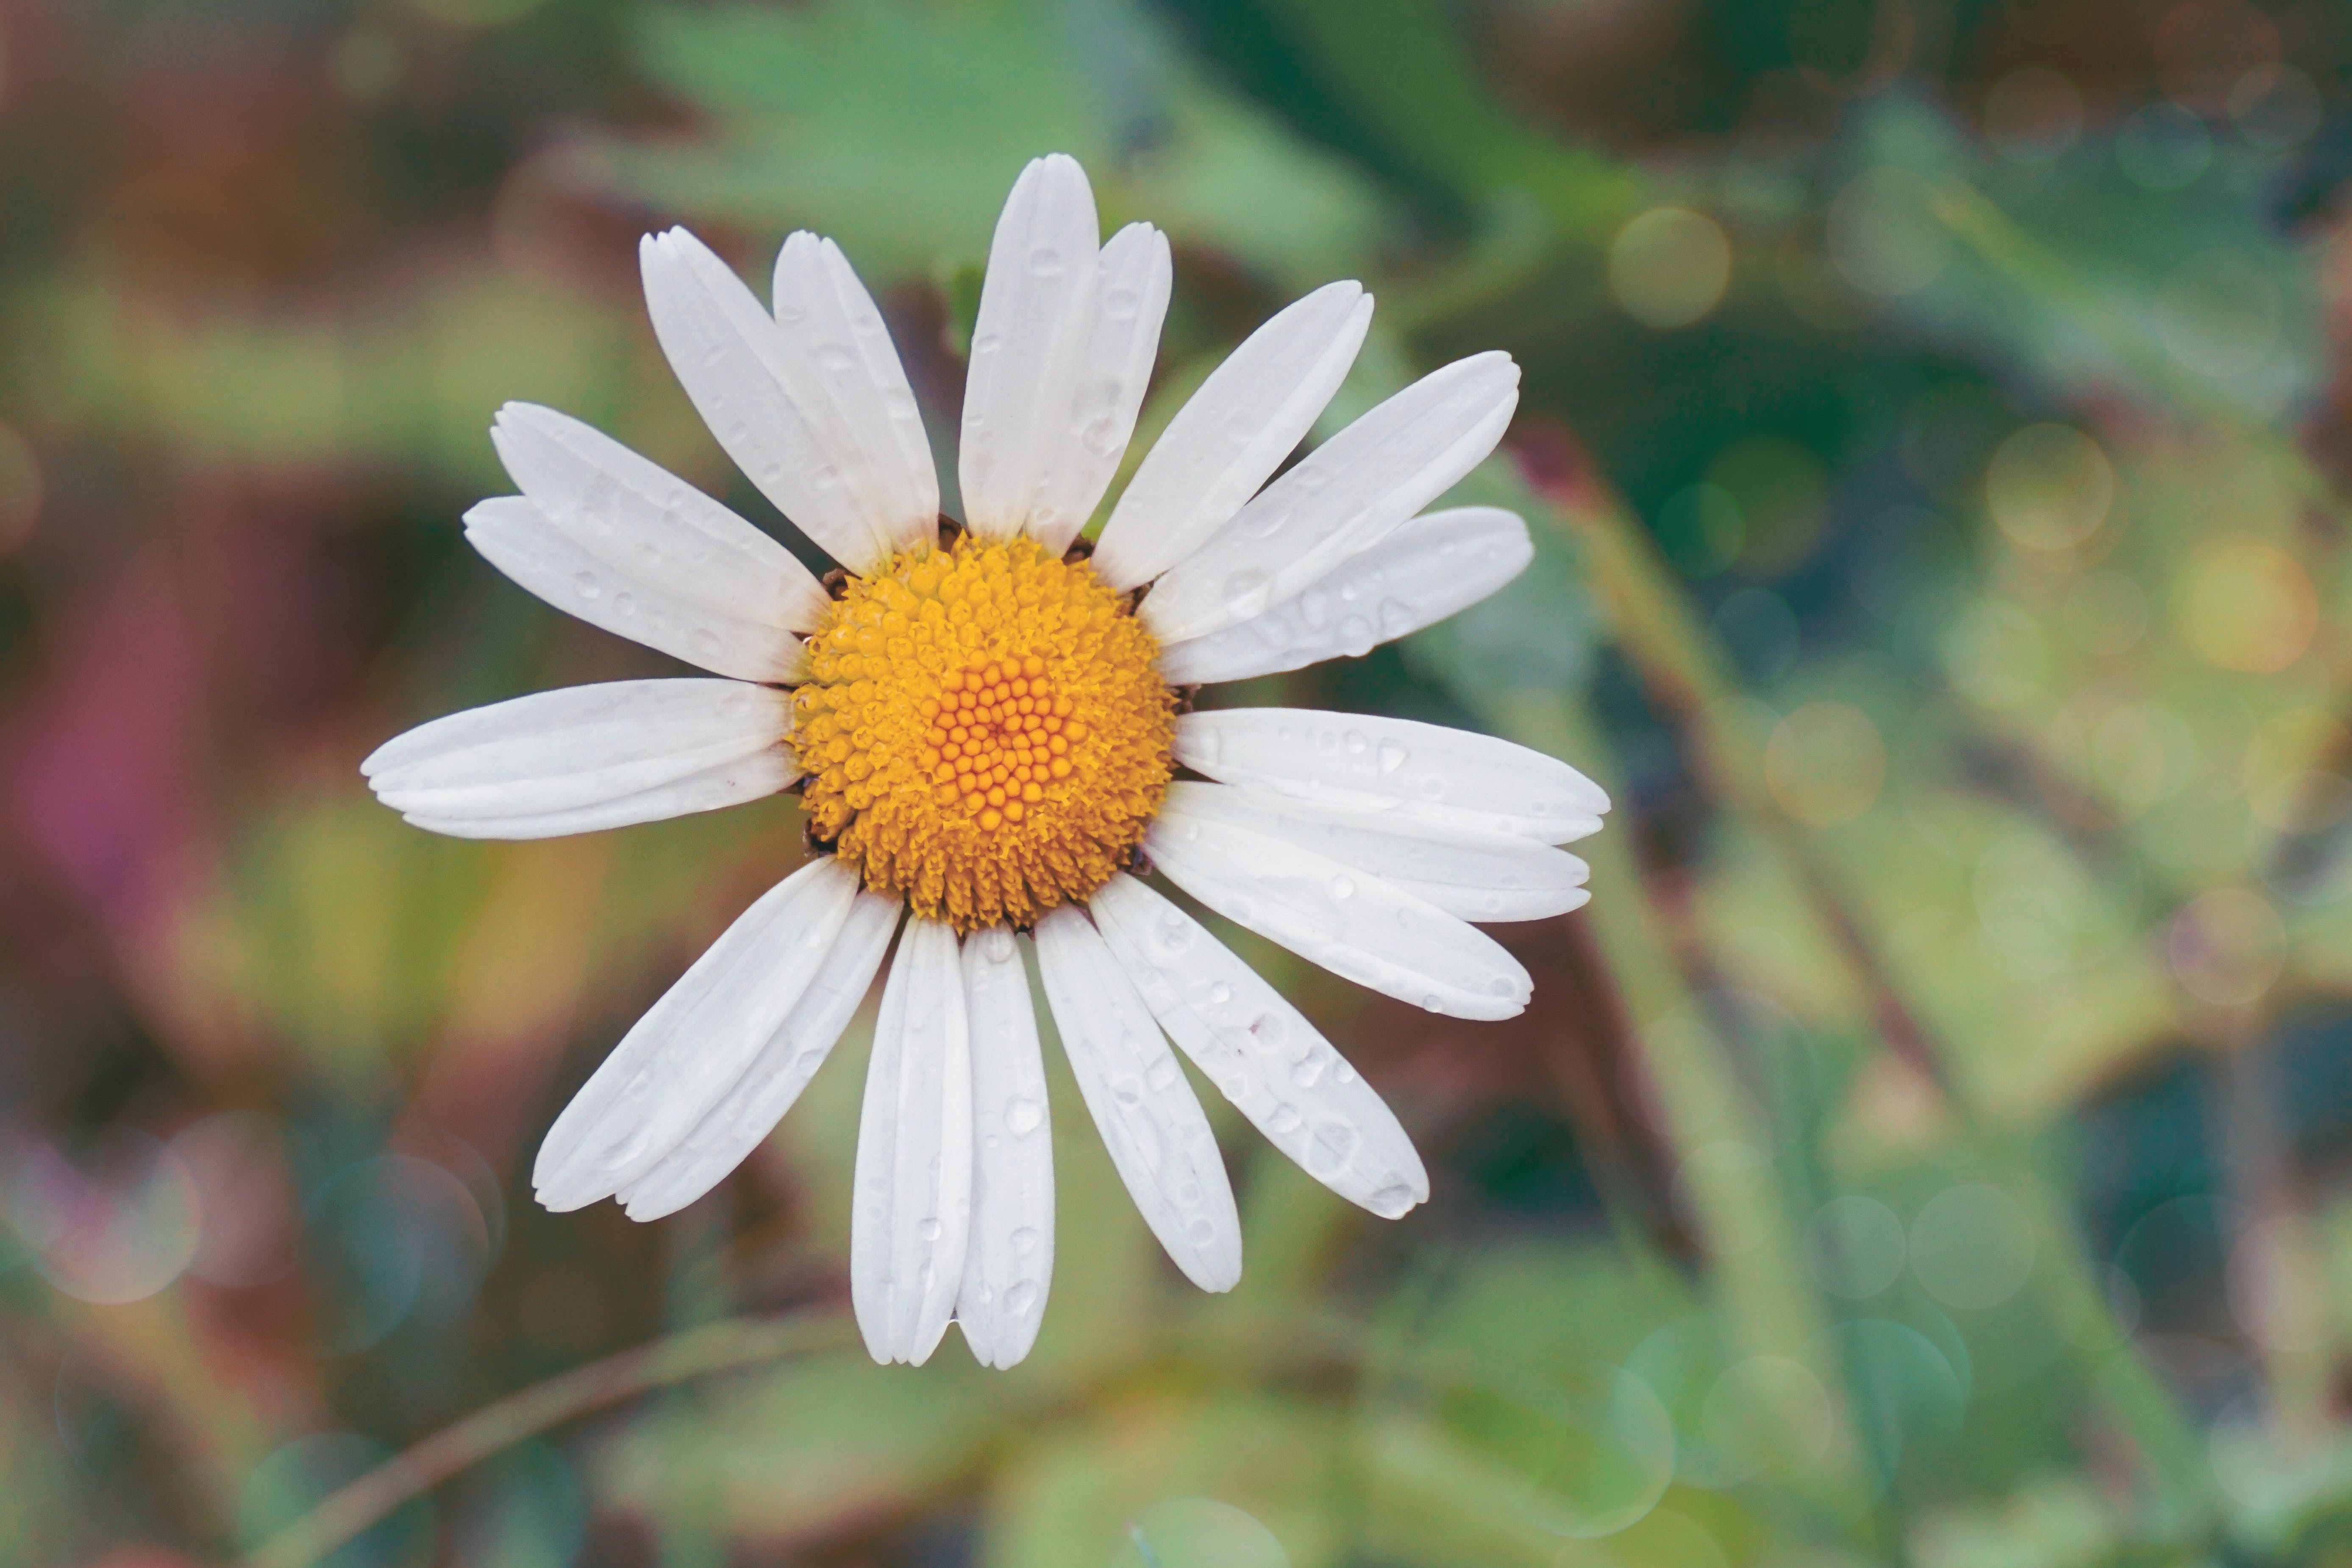 White Daisy Flower With Water Dew